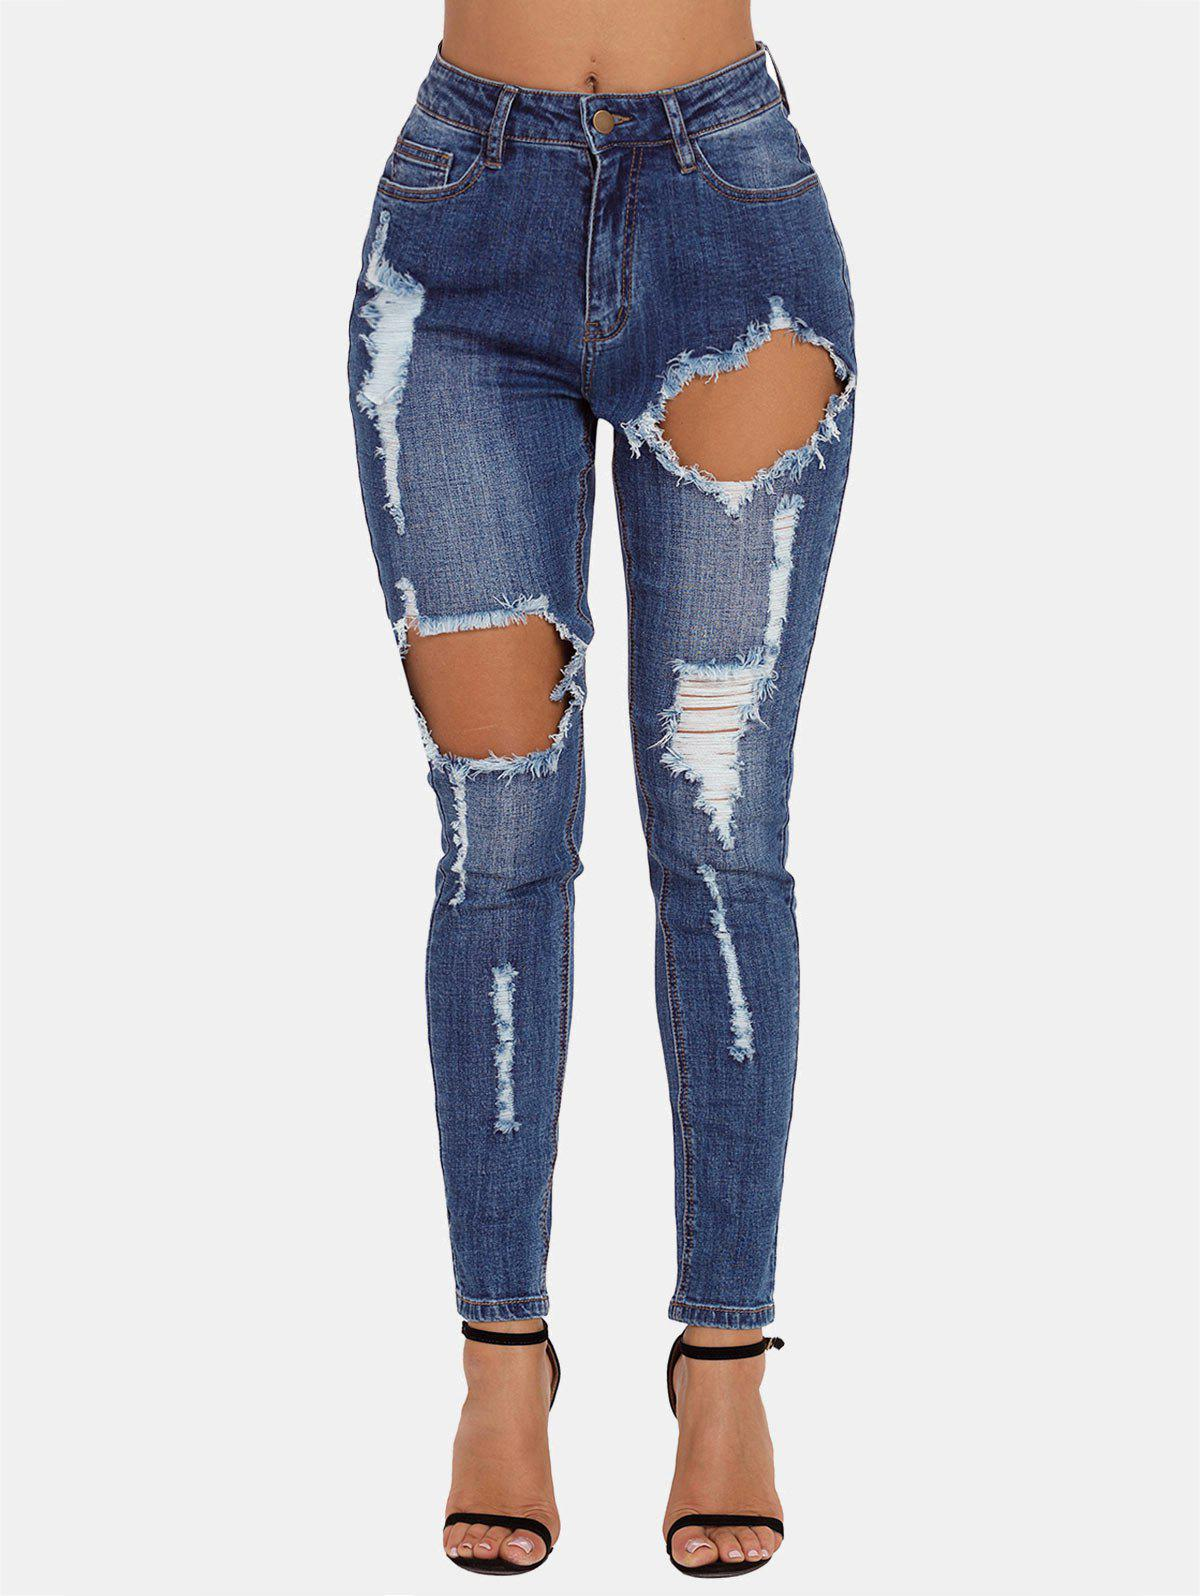 Fancy Ripped Front Cut Out Skinny Jeans